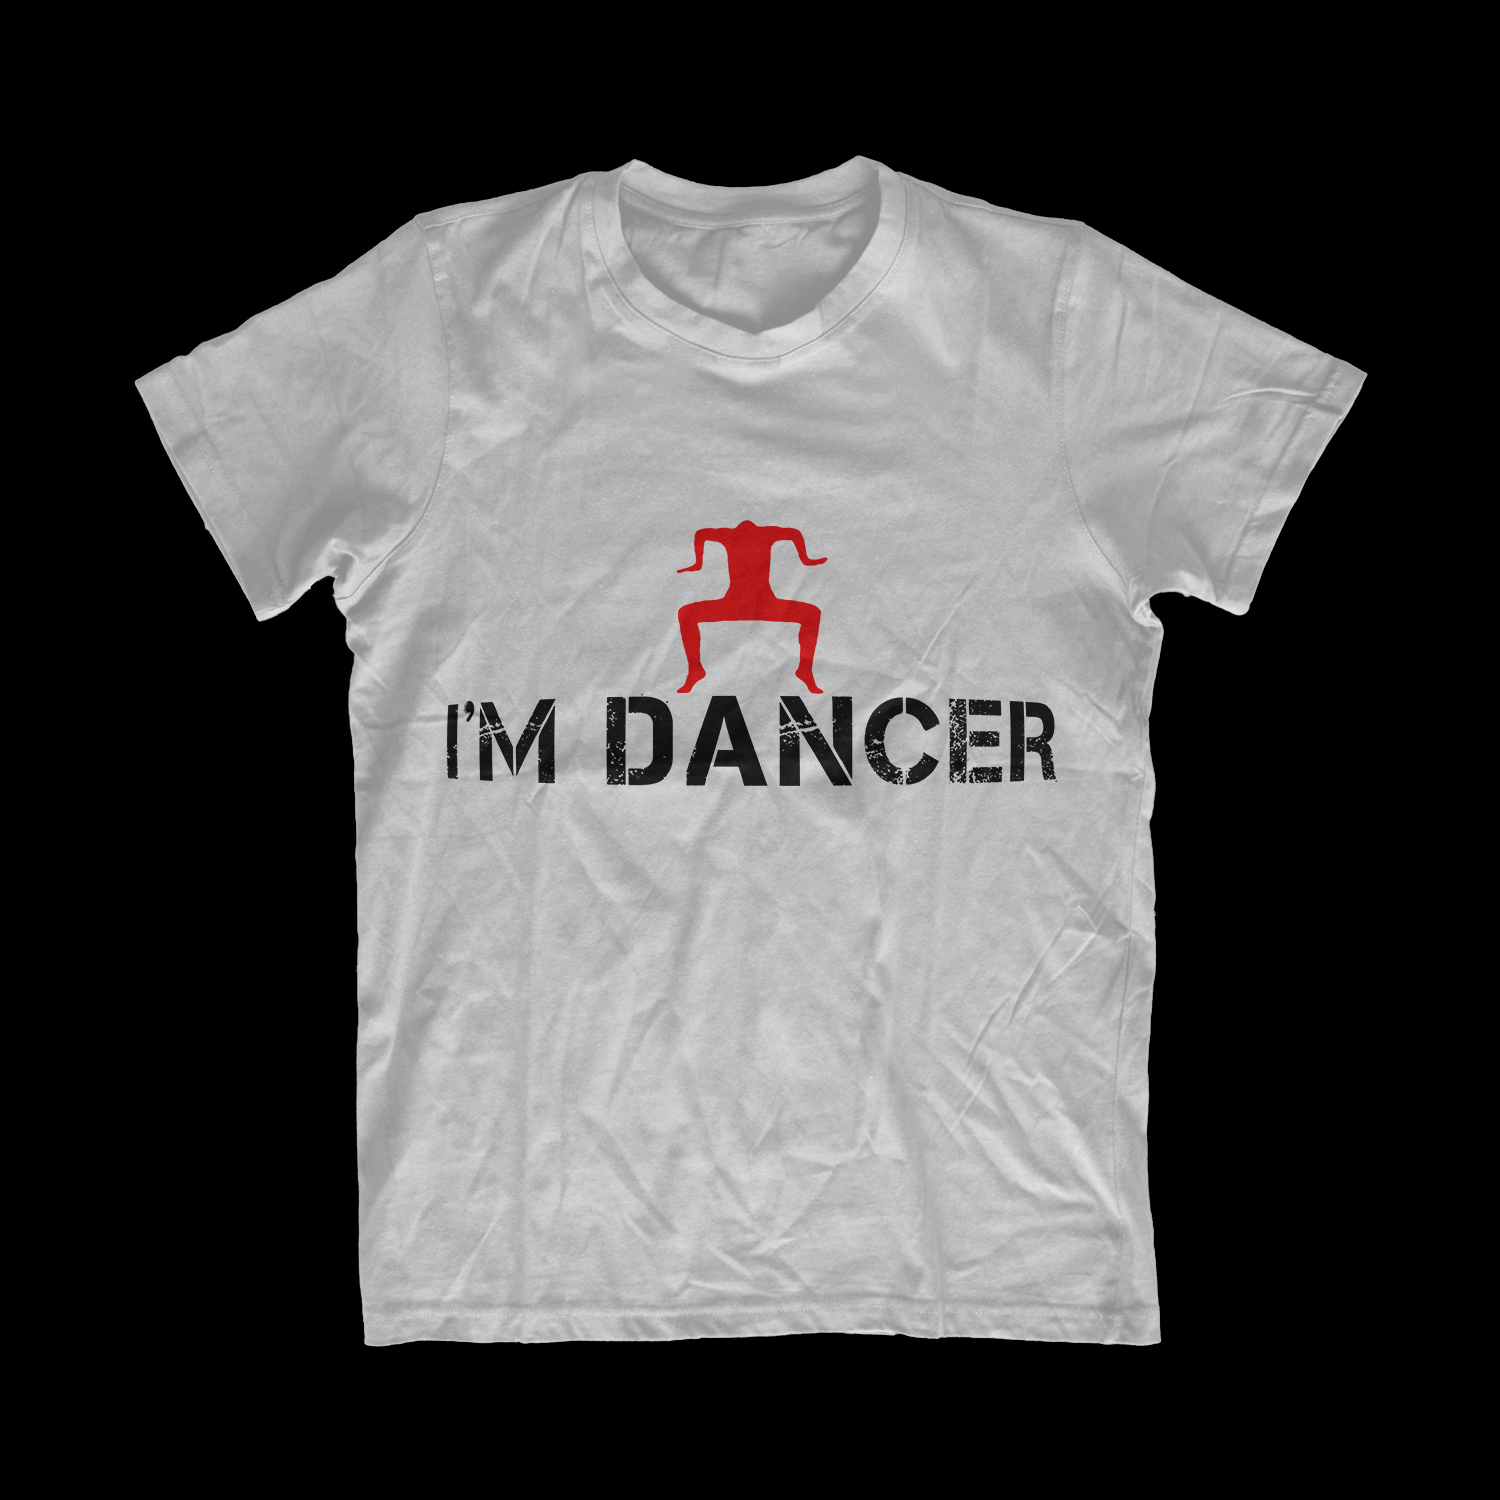 T shirt design youtube - T Shirt Design Design 7573094 Submitted To Youtube Dance Star Needs A